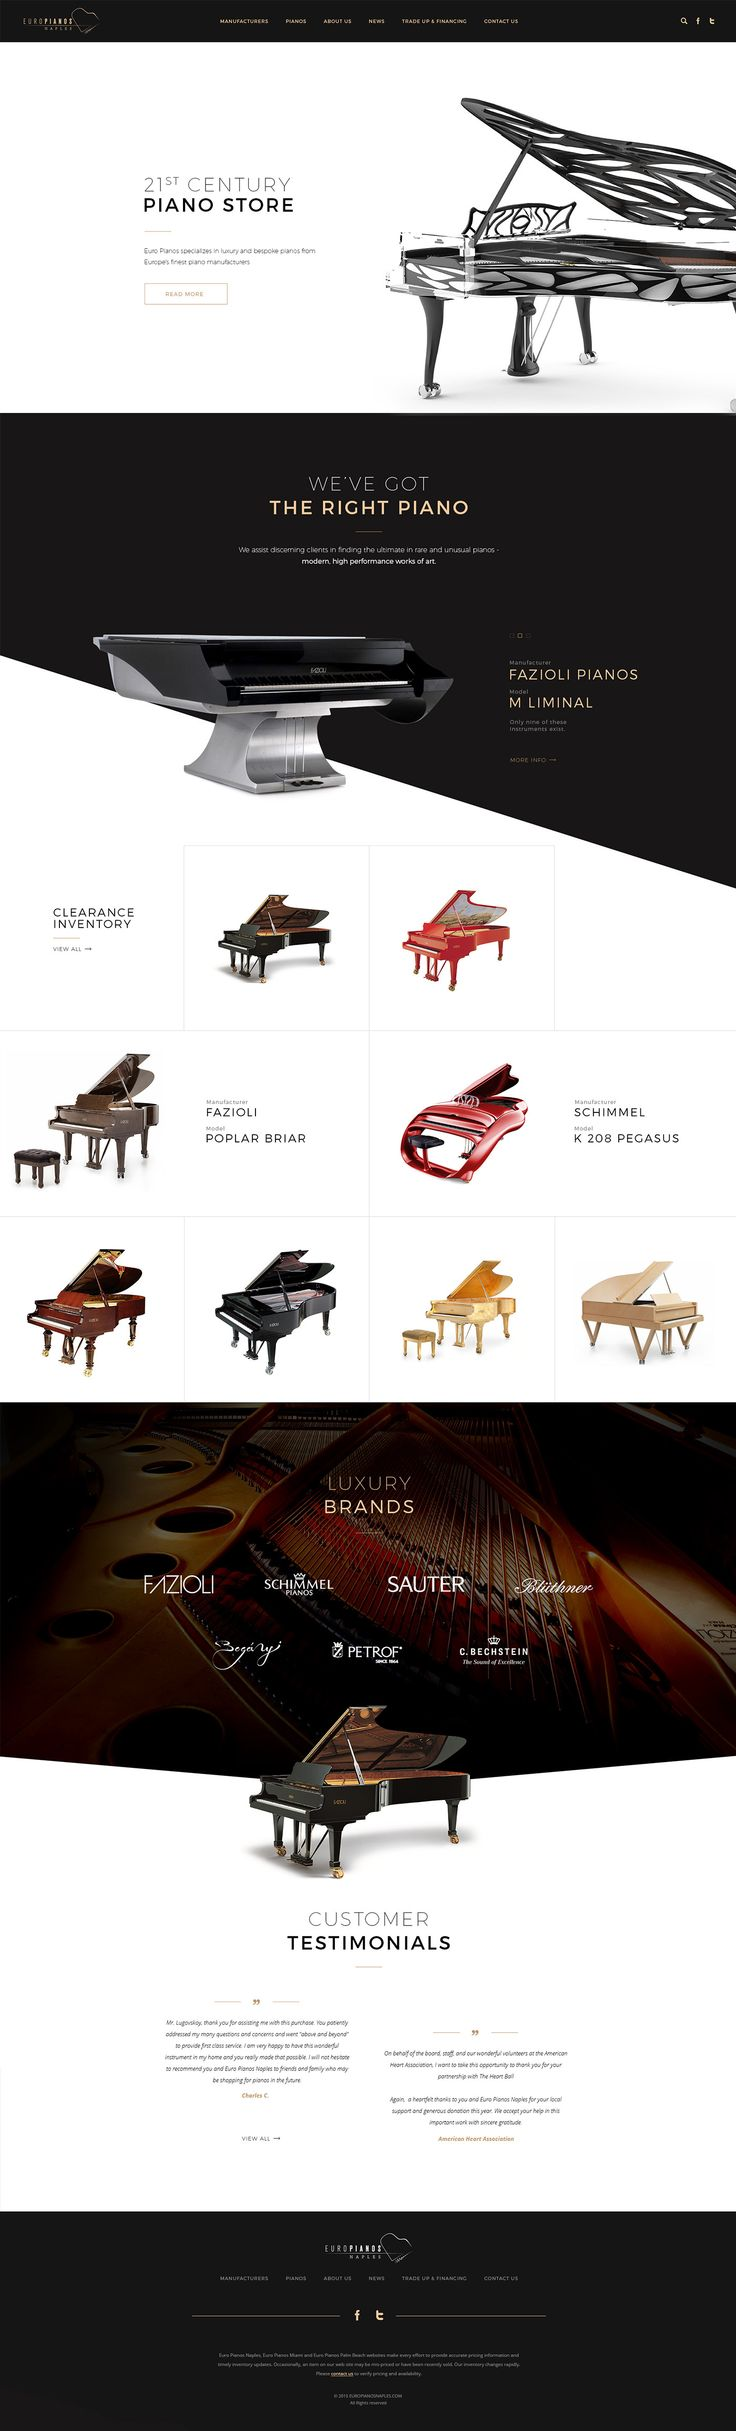 Piano store on Behance